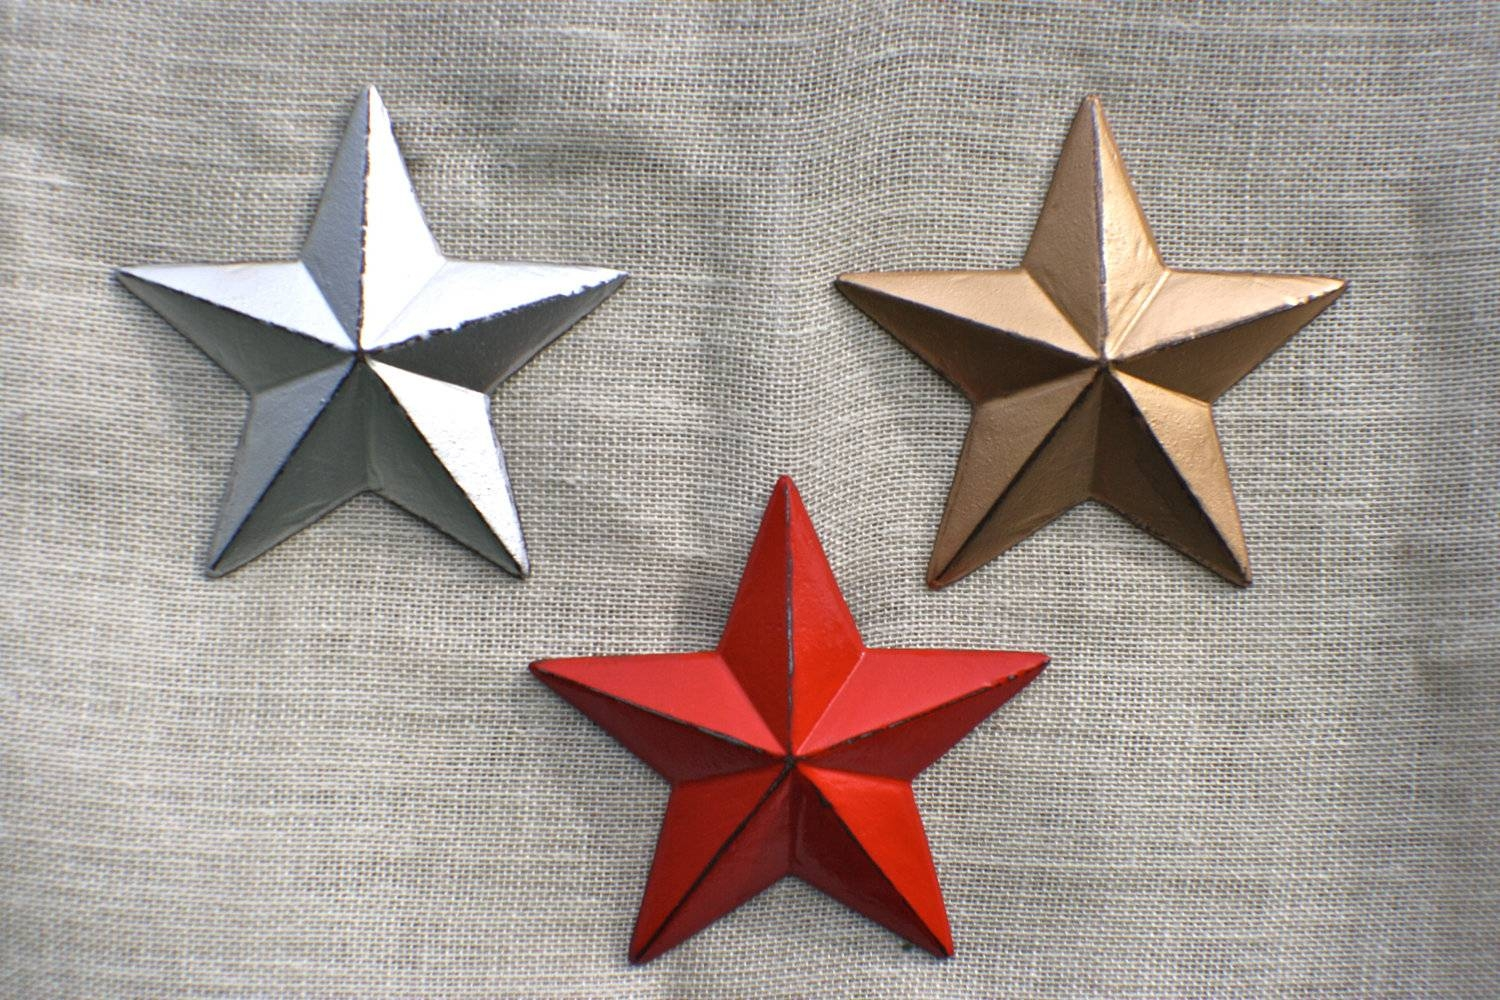 Texas Star Wall Decor | Home Decor And Design Pertaining To Latest Texas Star Metal Wall Art (View 8 of 20)